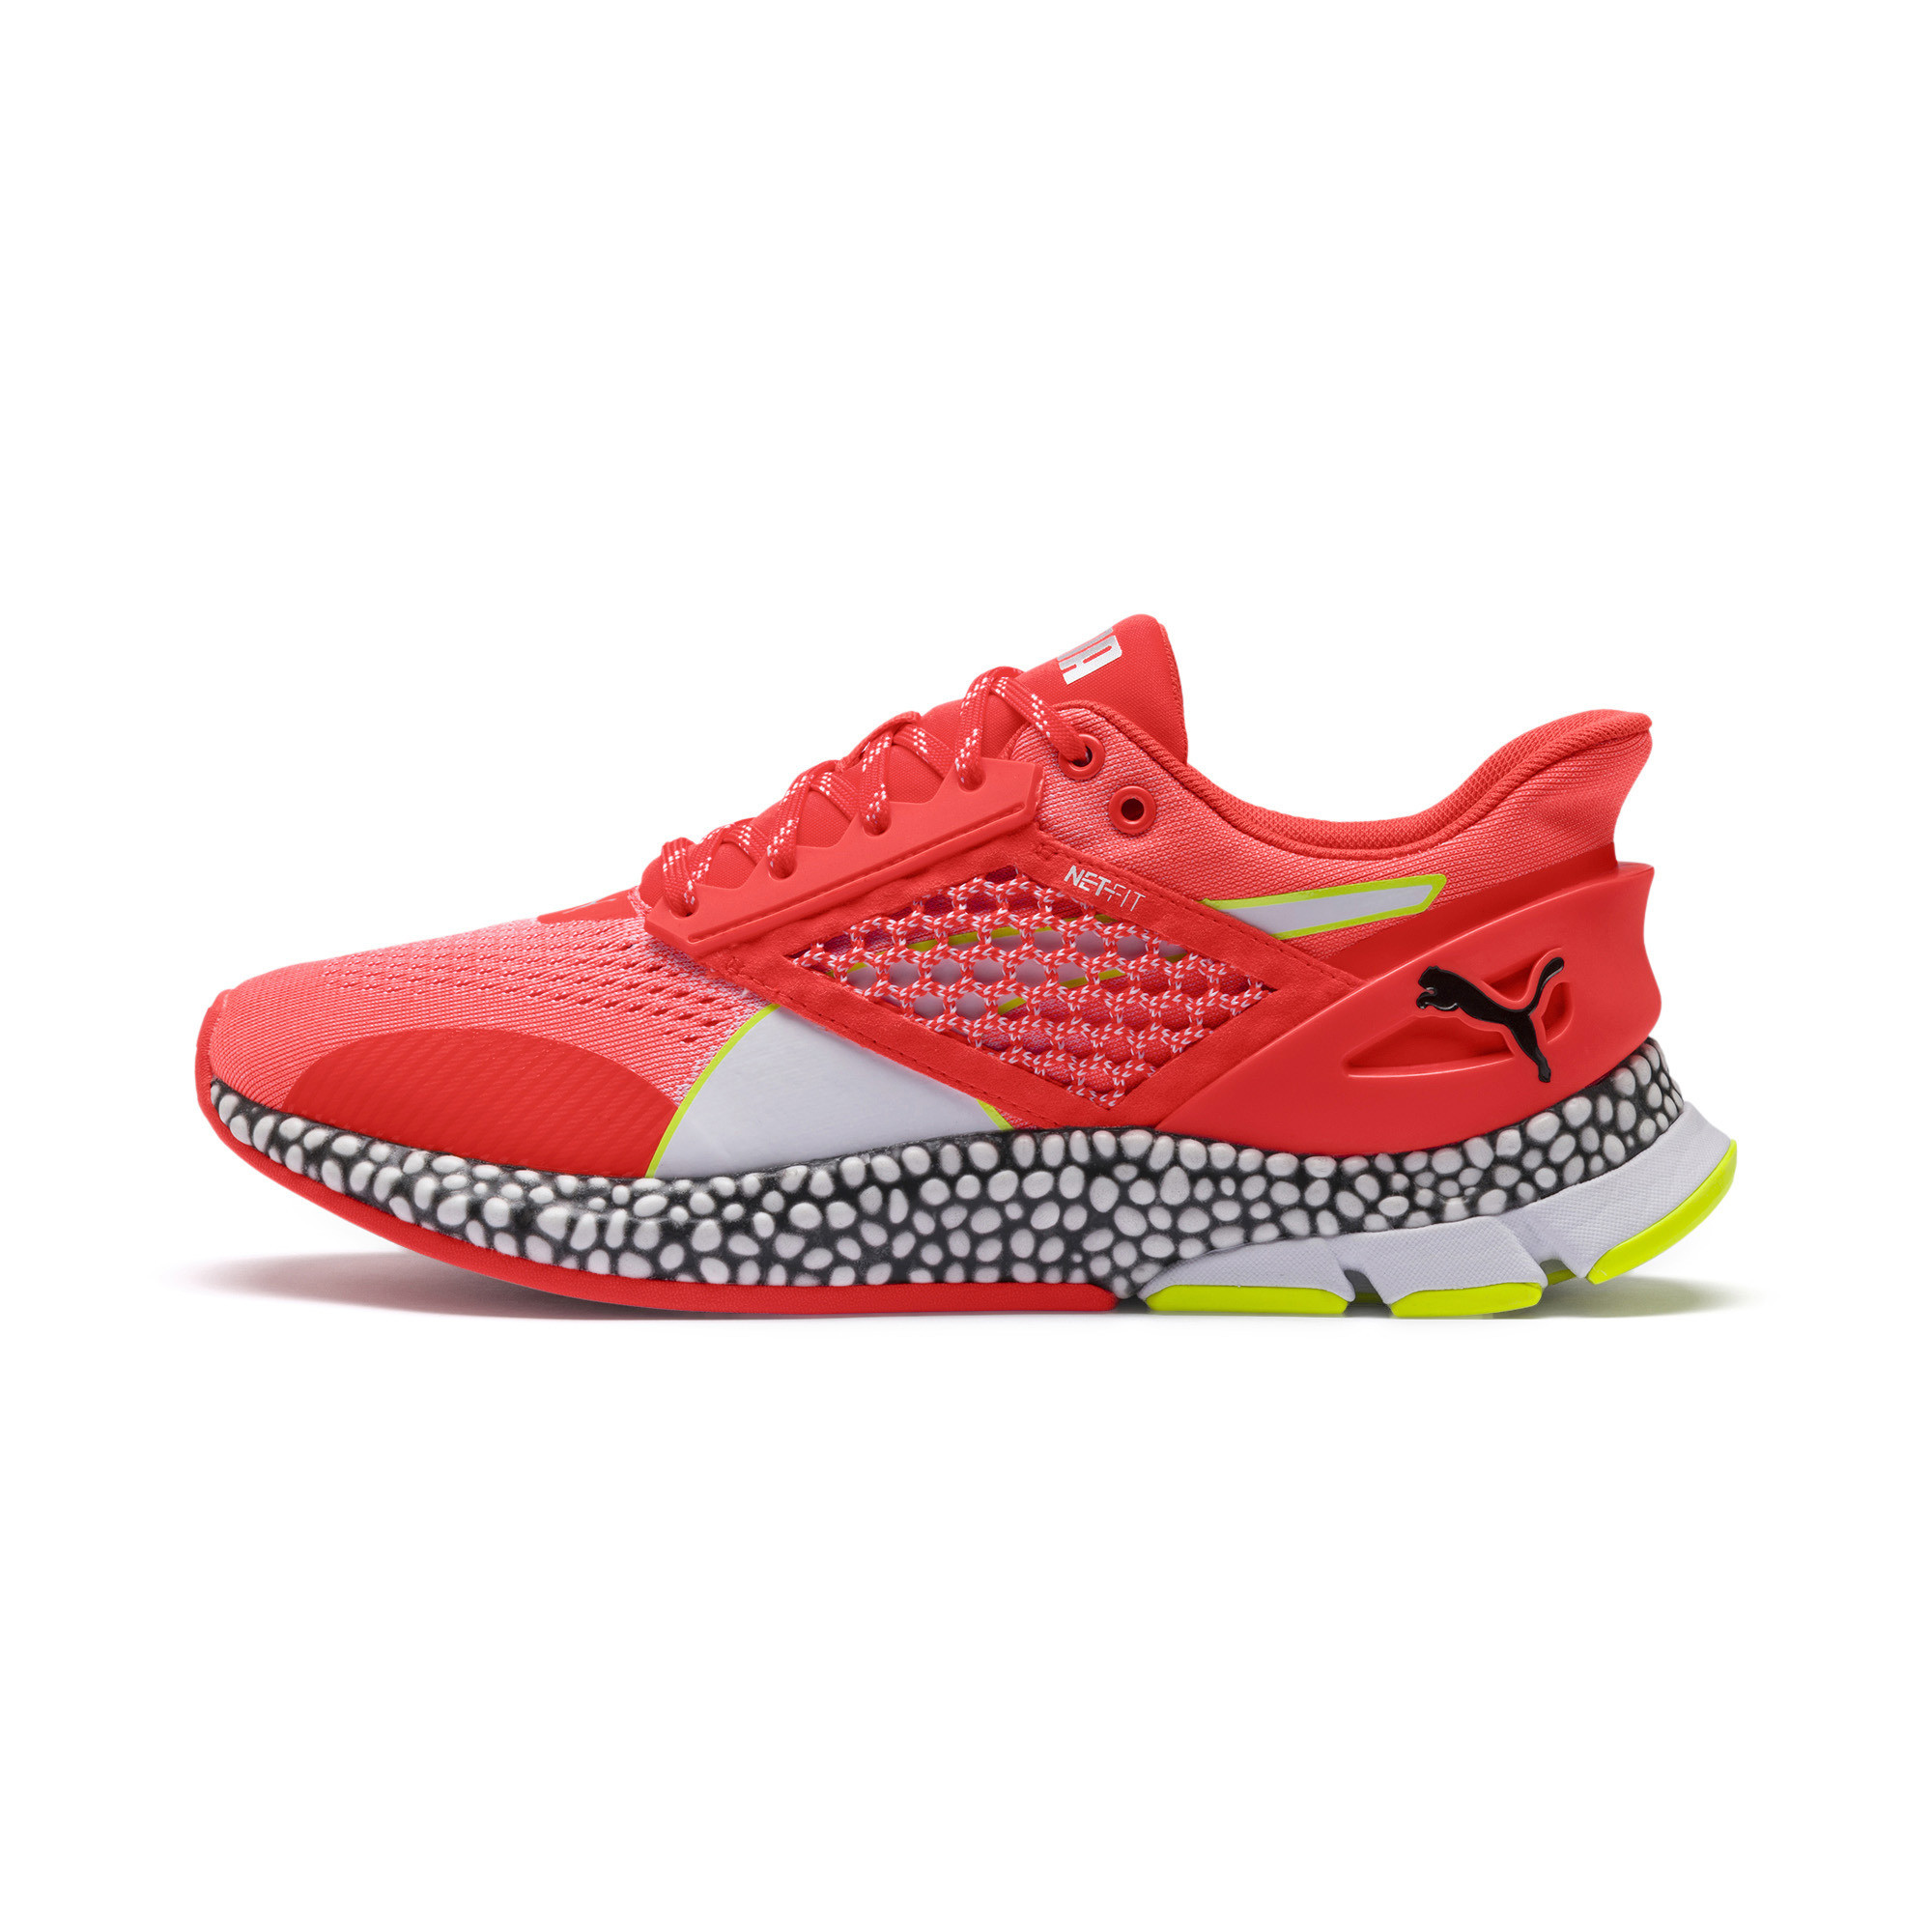 PUMA-Men-039-s-HYBRID-Astro-Running-Shoes thumbnail 4